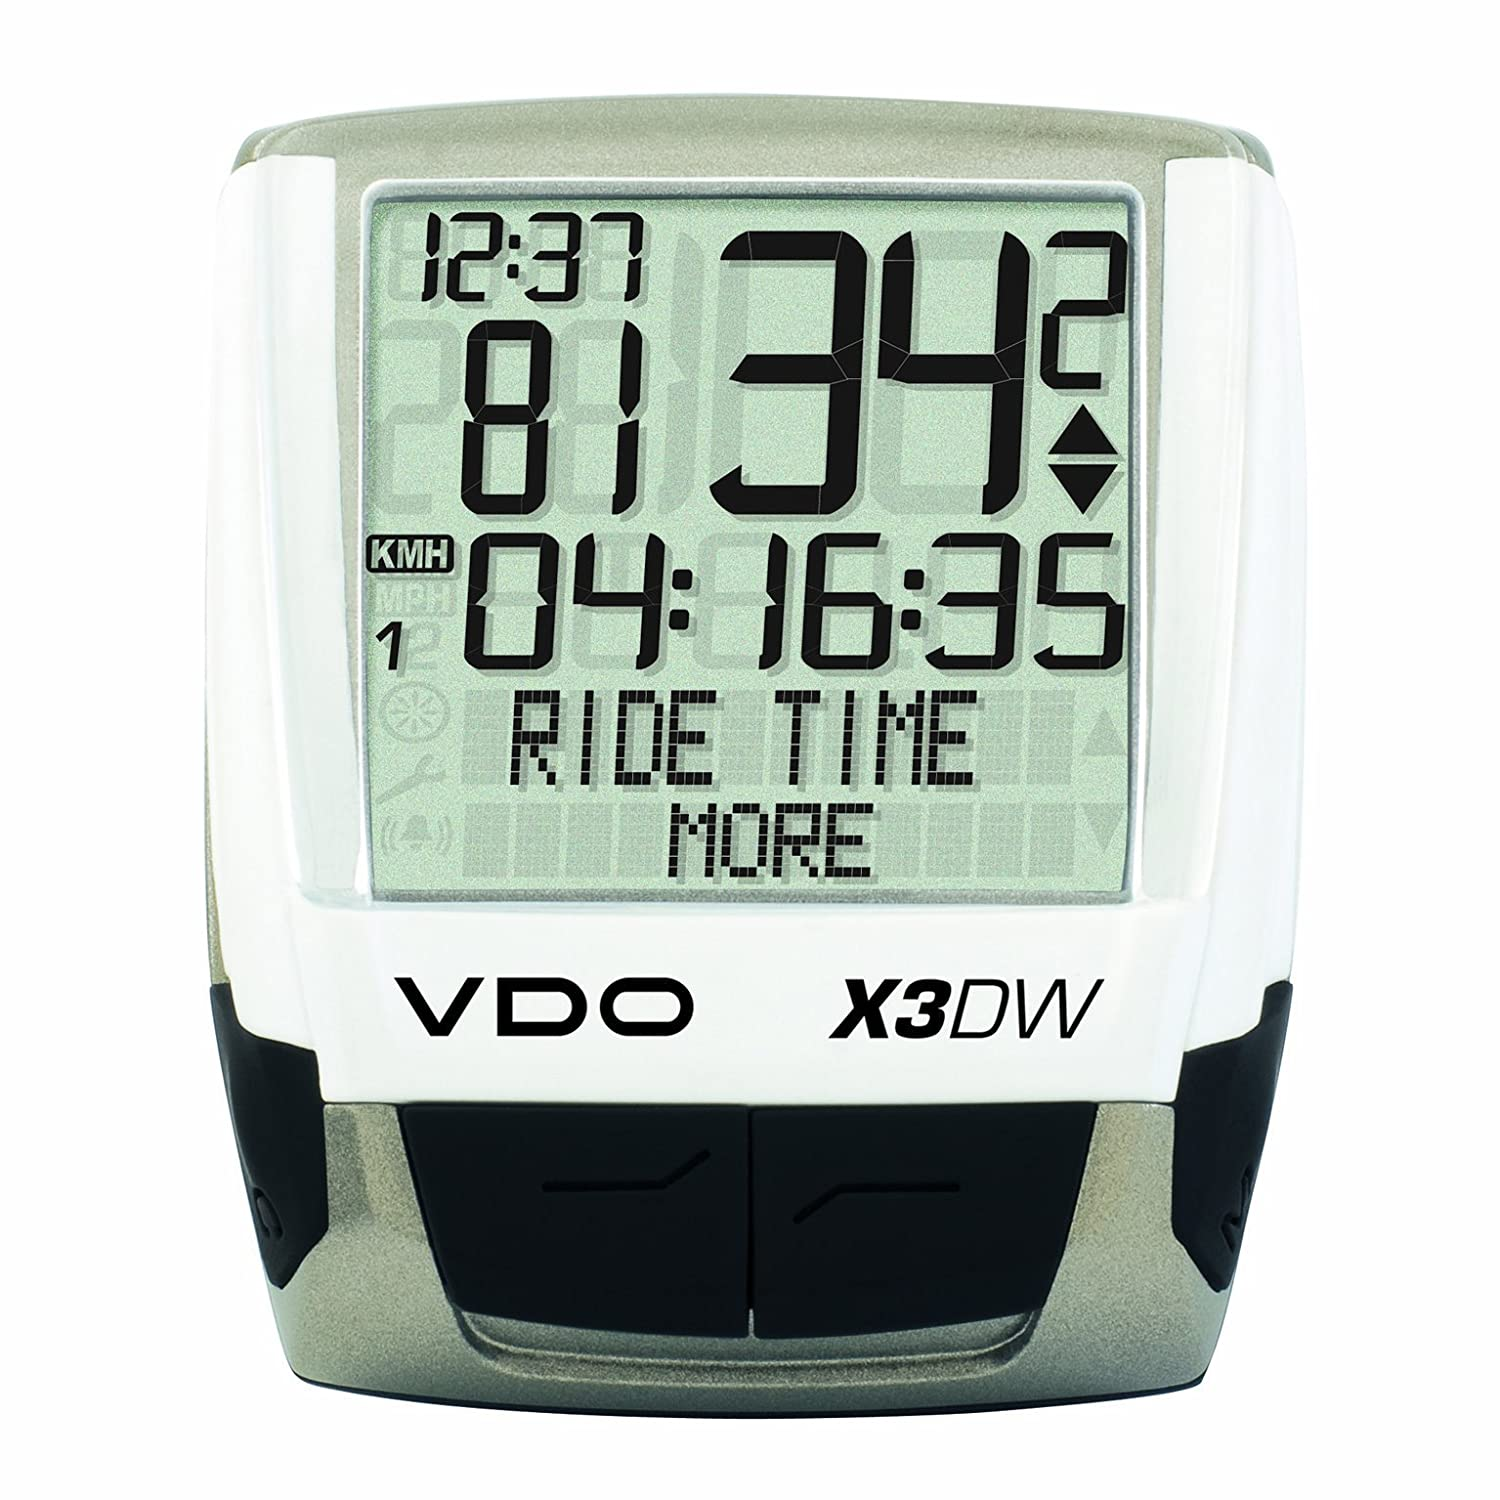 Vdo X3dw Wireless Bicycle Computer Cyclocomputers